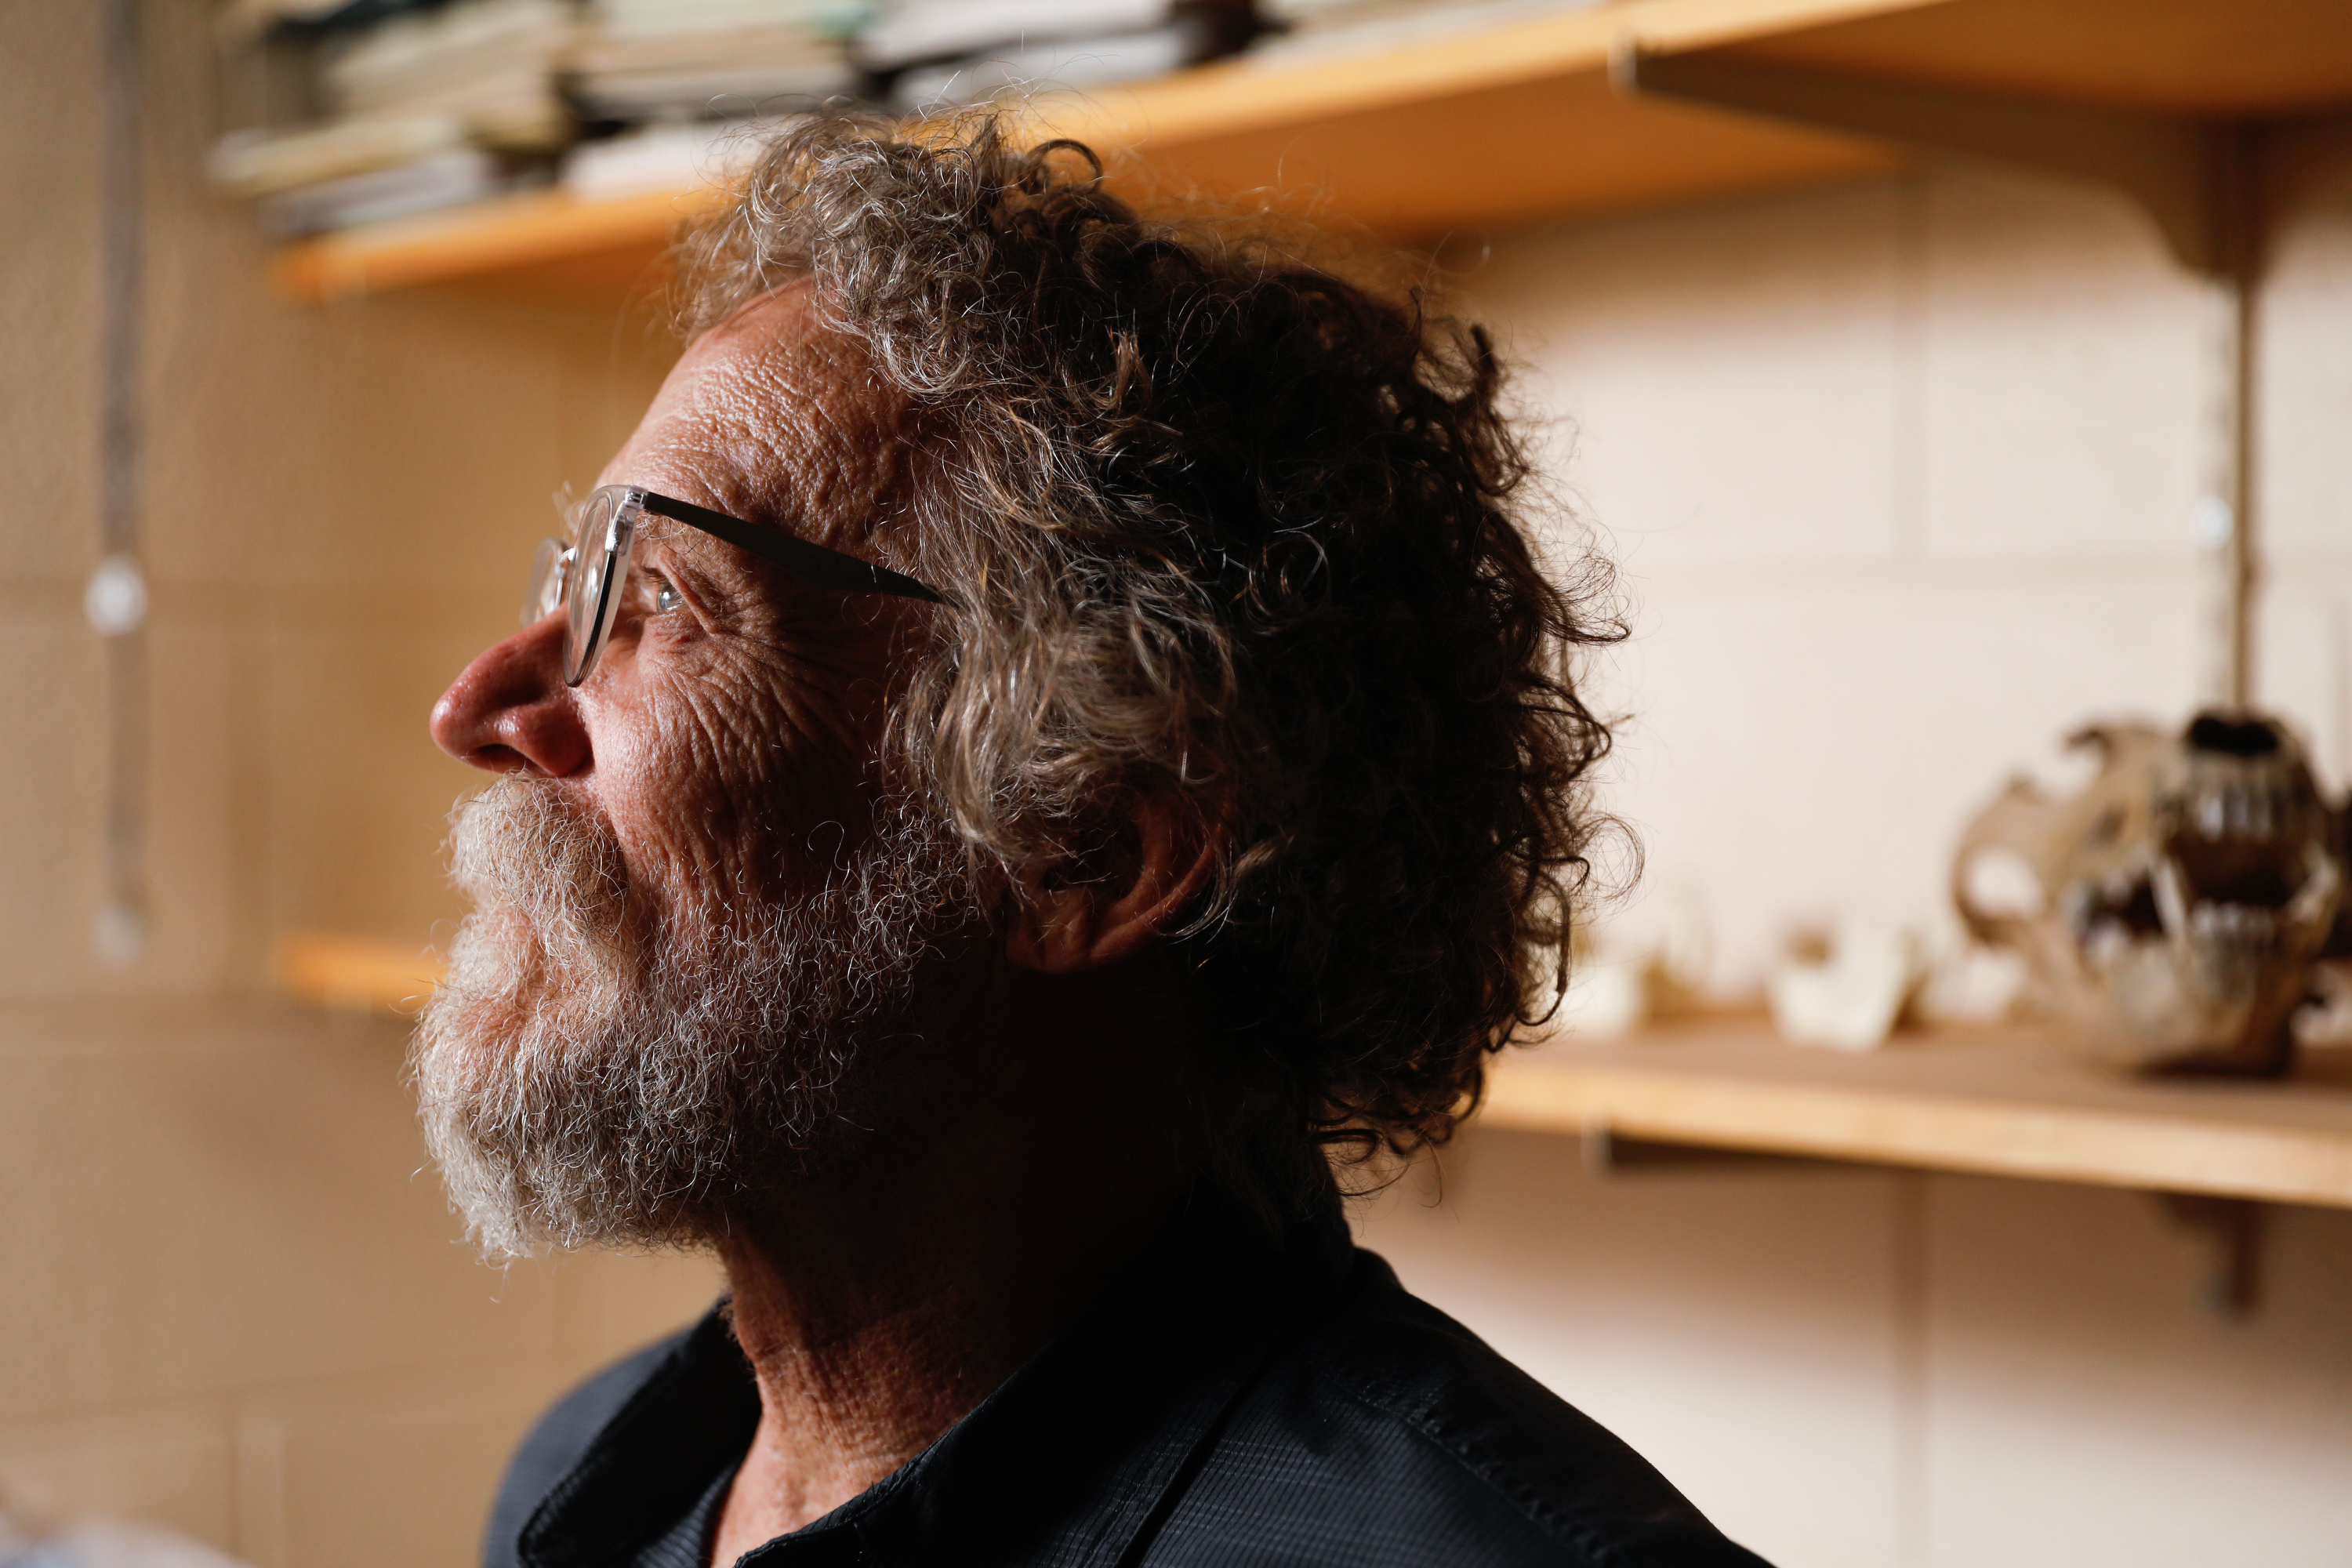 David Carrier, a professor of biology and co-author of a study that explores how beards serve an evolutionary purpose of protecting the jaw during fistfights, poses for a portrait in his office at the University of Utah in Salt Lake City on Friday, Sept. 10, 2021.